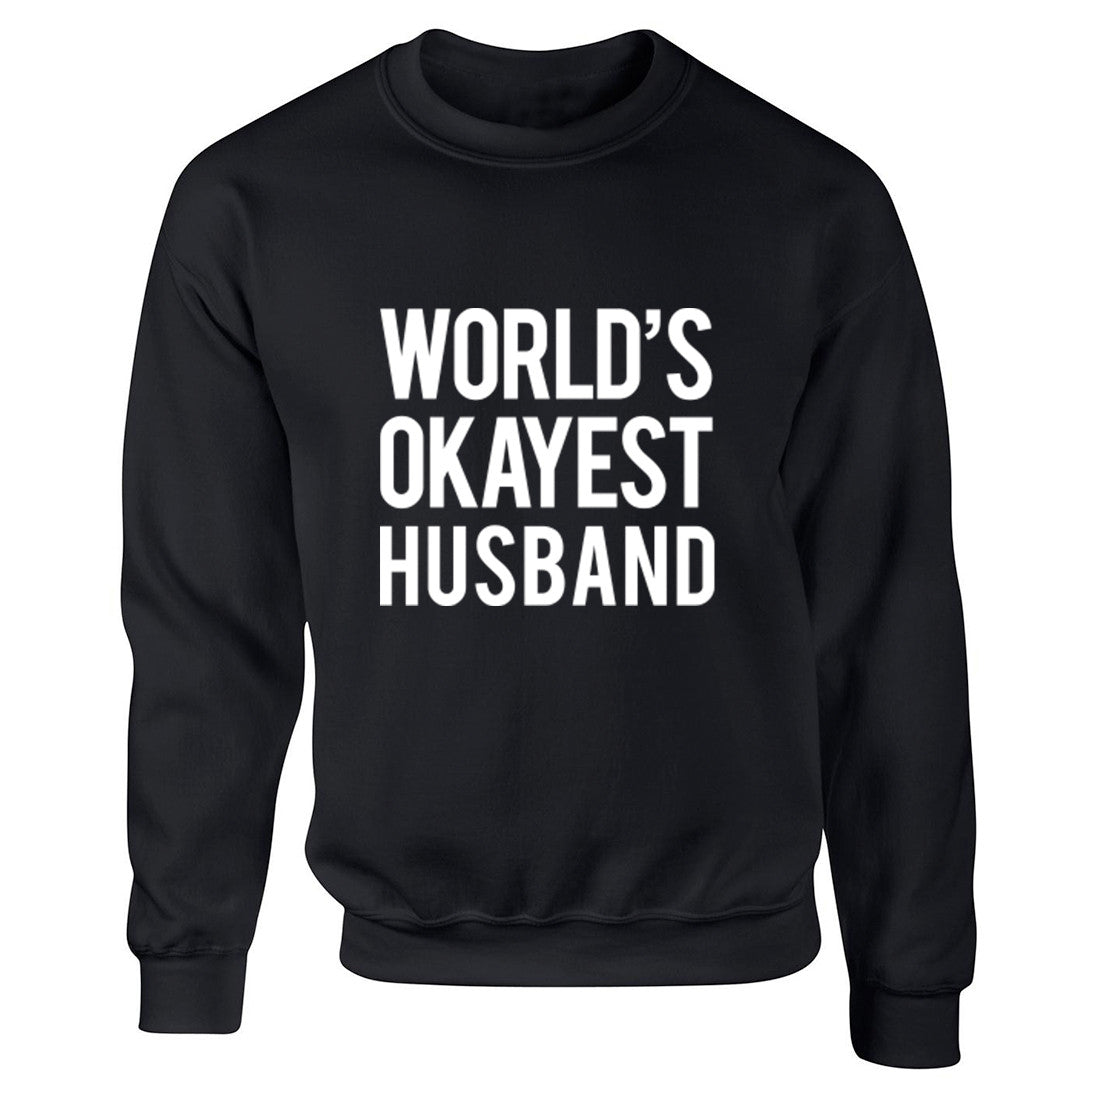 World's Okayest Husband Unisex Jumper K0480 - Illustrated Identity Ltd.